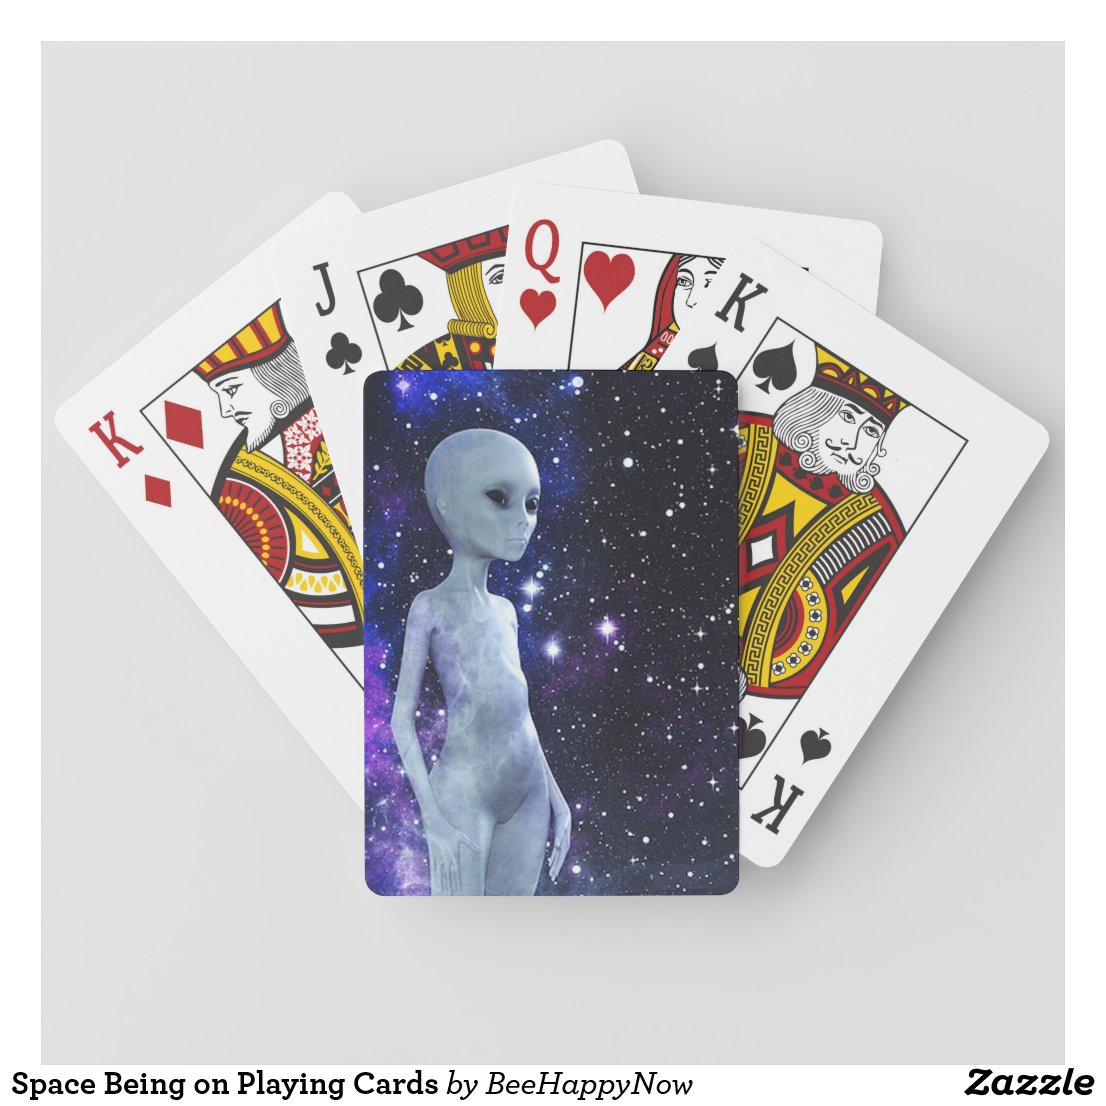 Space Being on Playing Cards